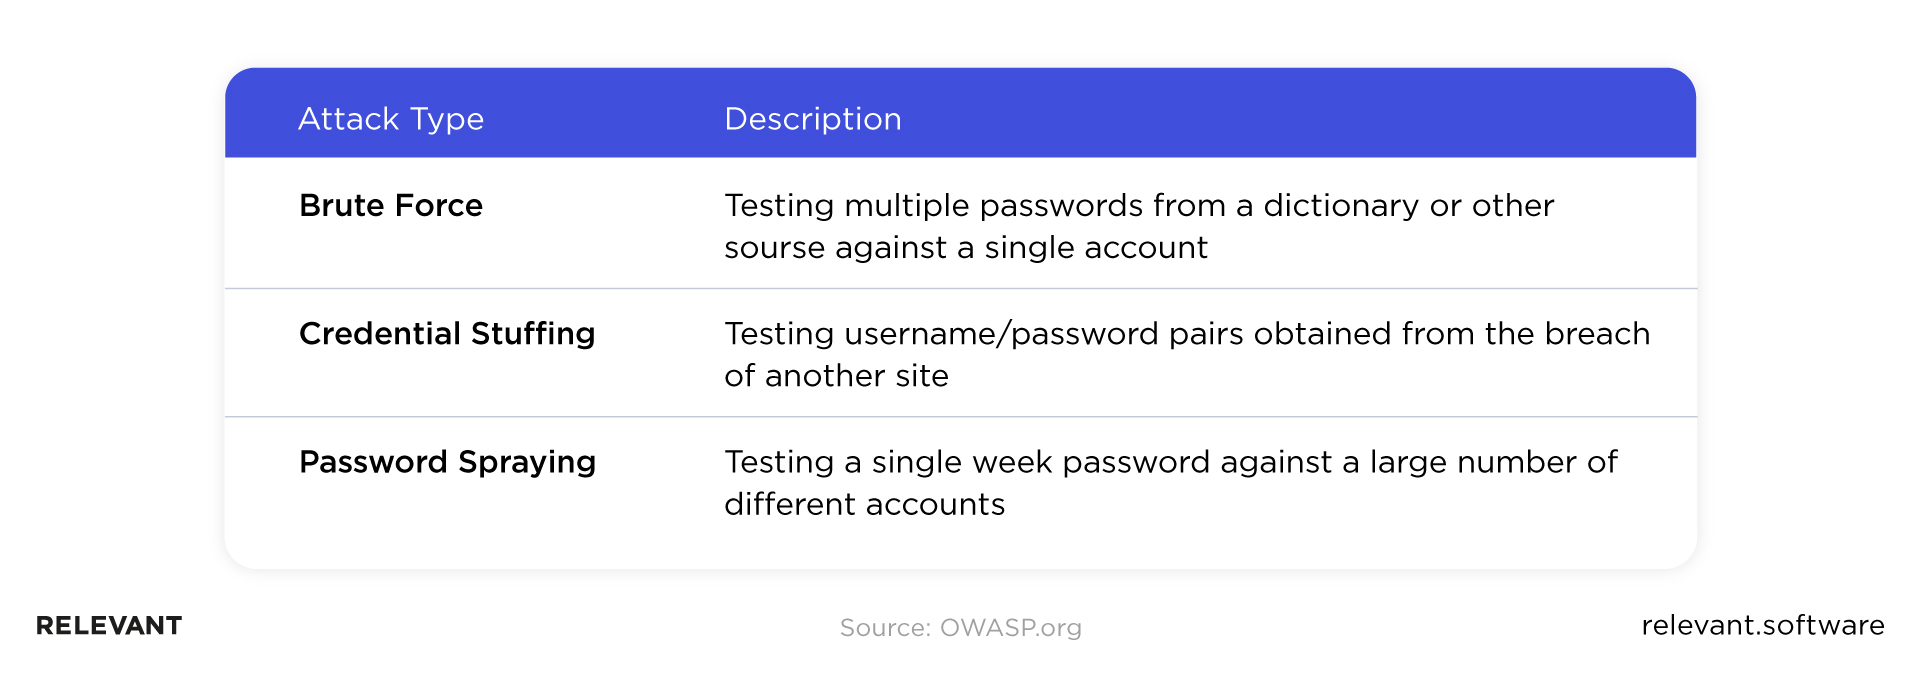 Authentication attack types